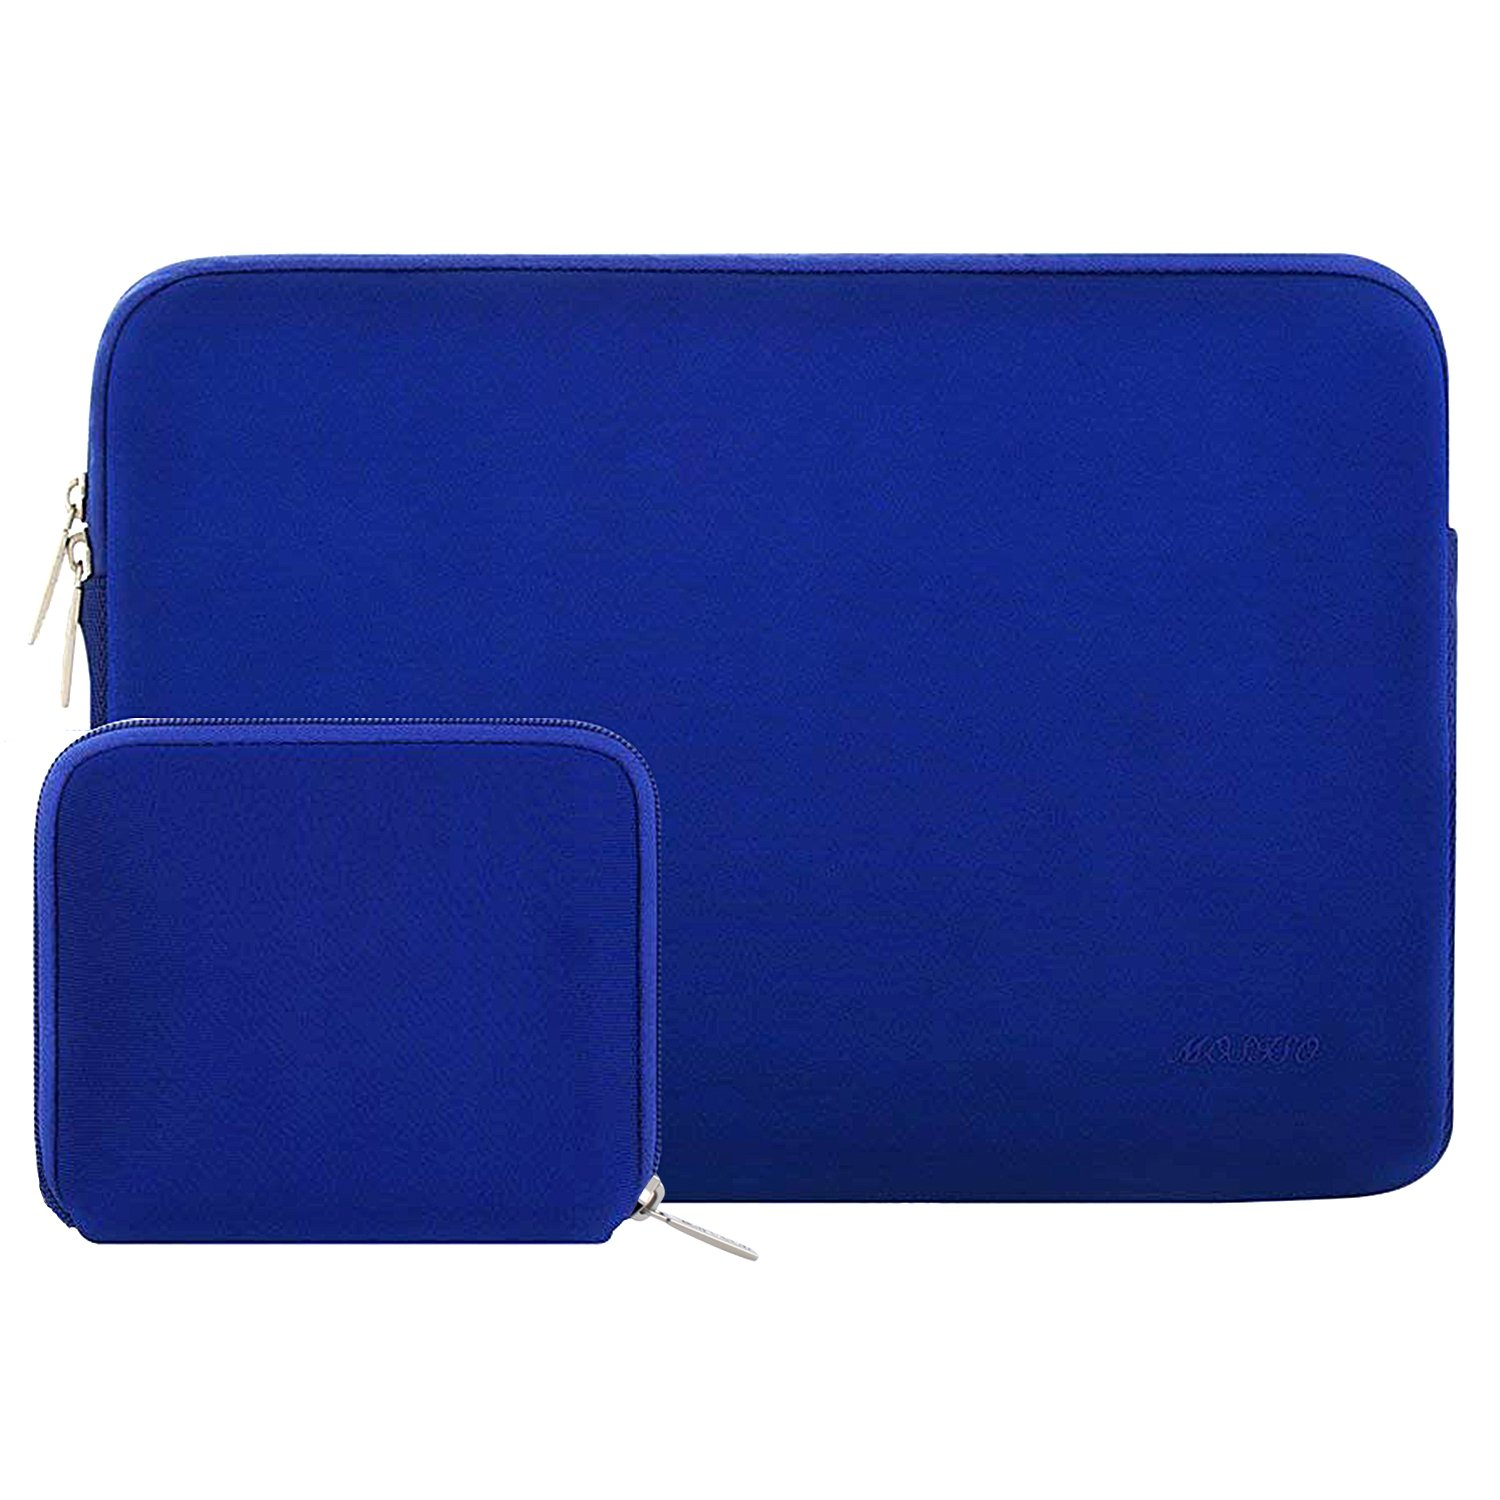 MOSISO Water Repellent Neoprene Sleeve Bag Cover Compatible 13-13.3 Inch Laptop with Small Case, Royal Blue